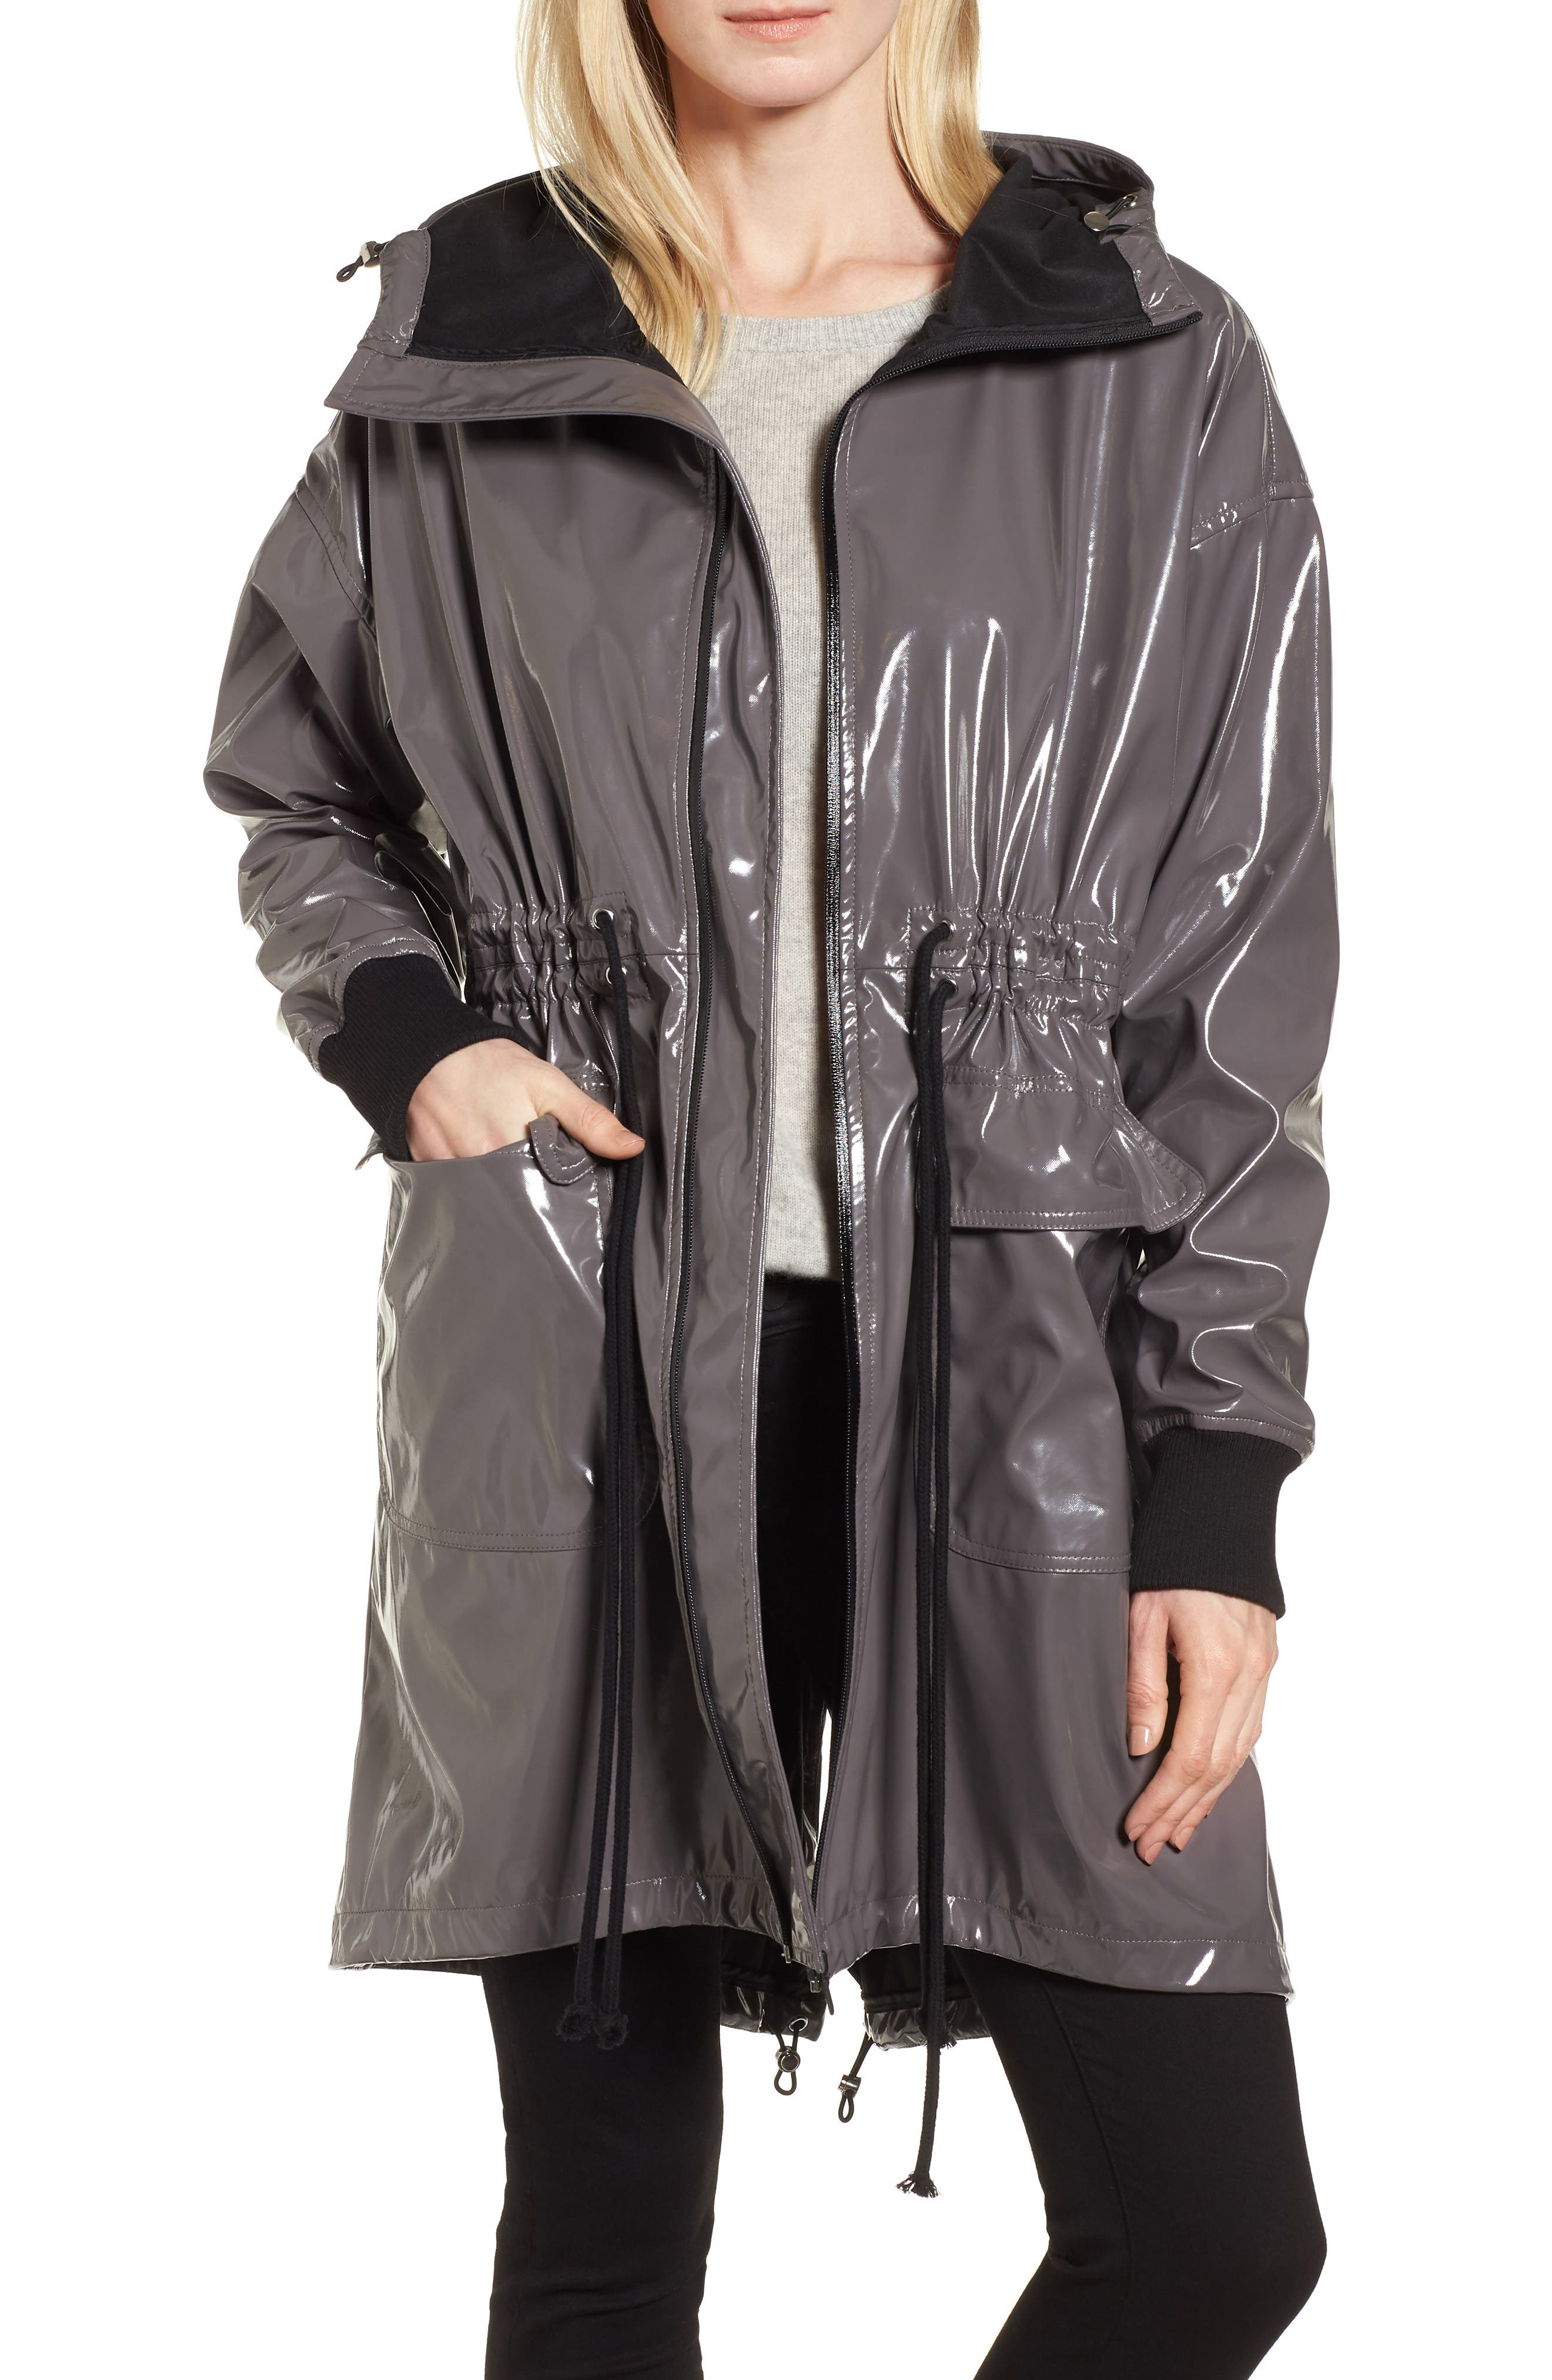 Sosken Fawn Patent Hooded Raincoat